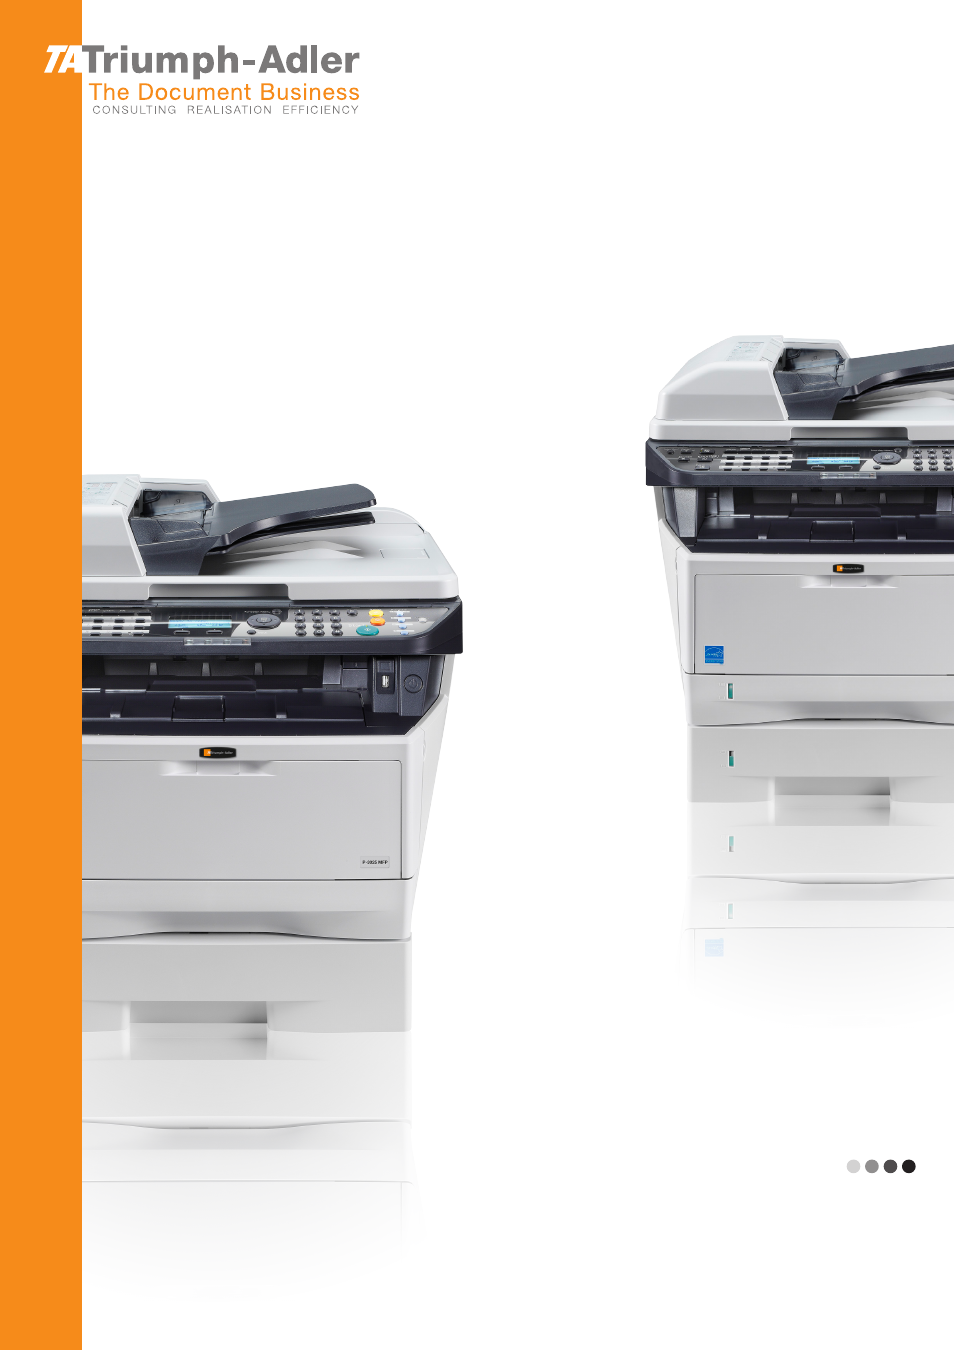 TA Triumph-Adler P-3020 MFP User Manual   481 pages   Also for: P